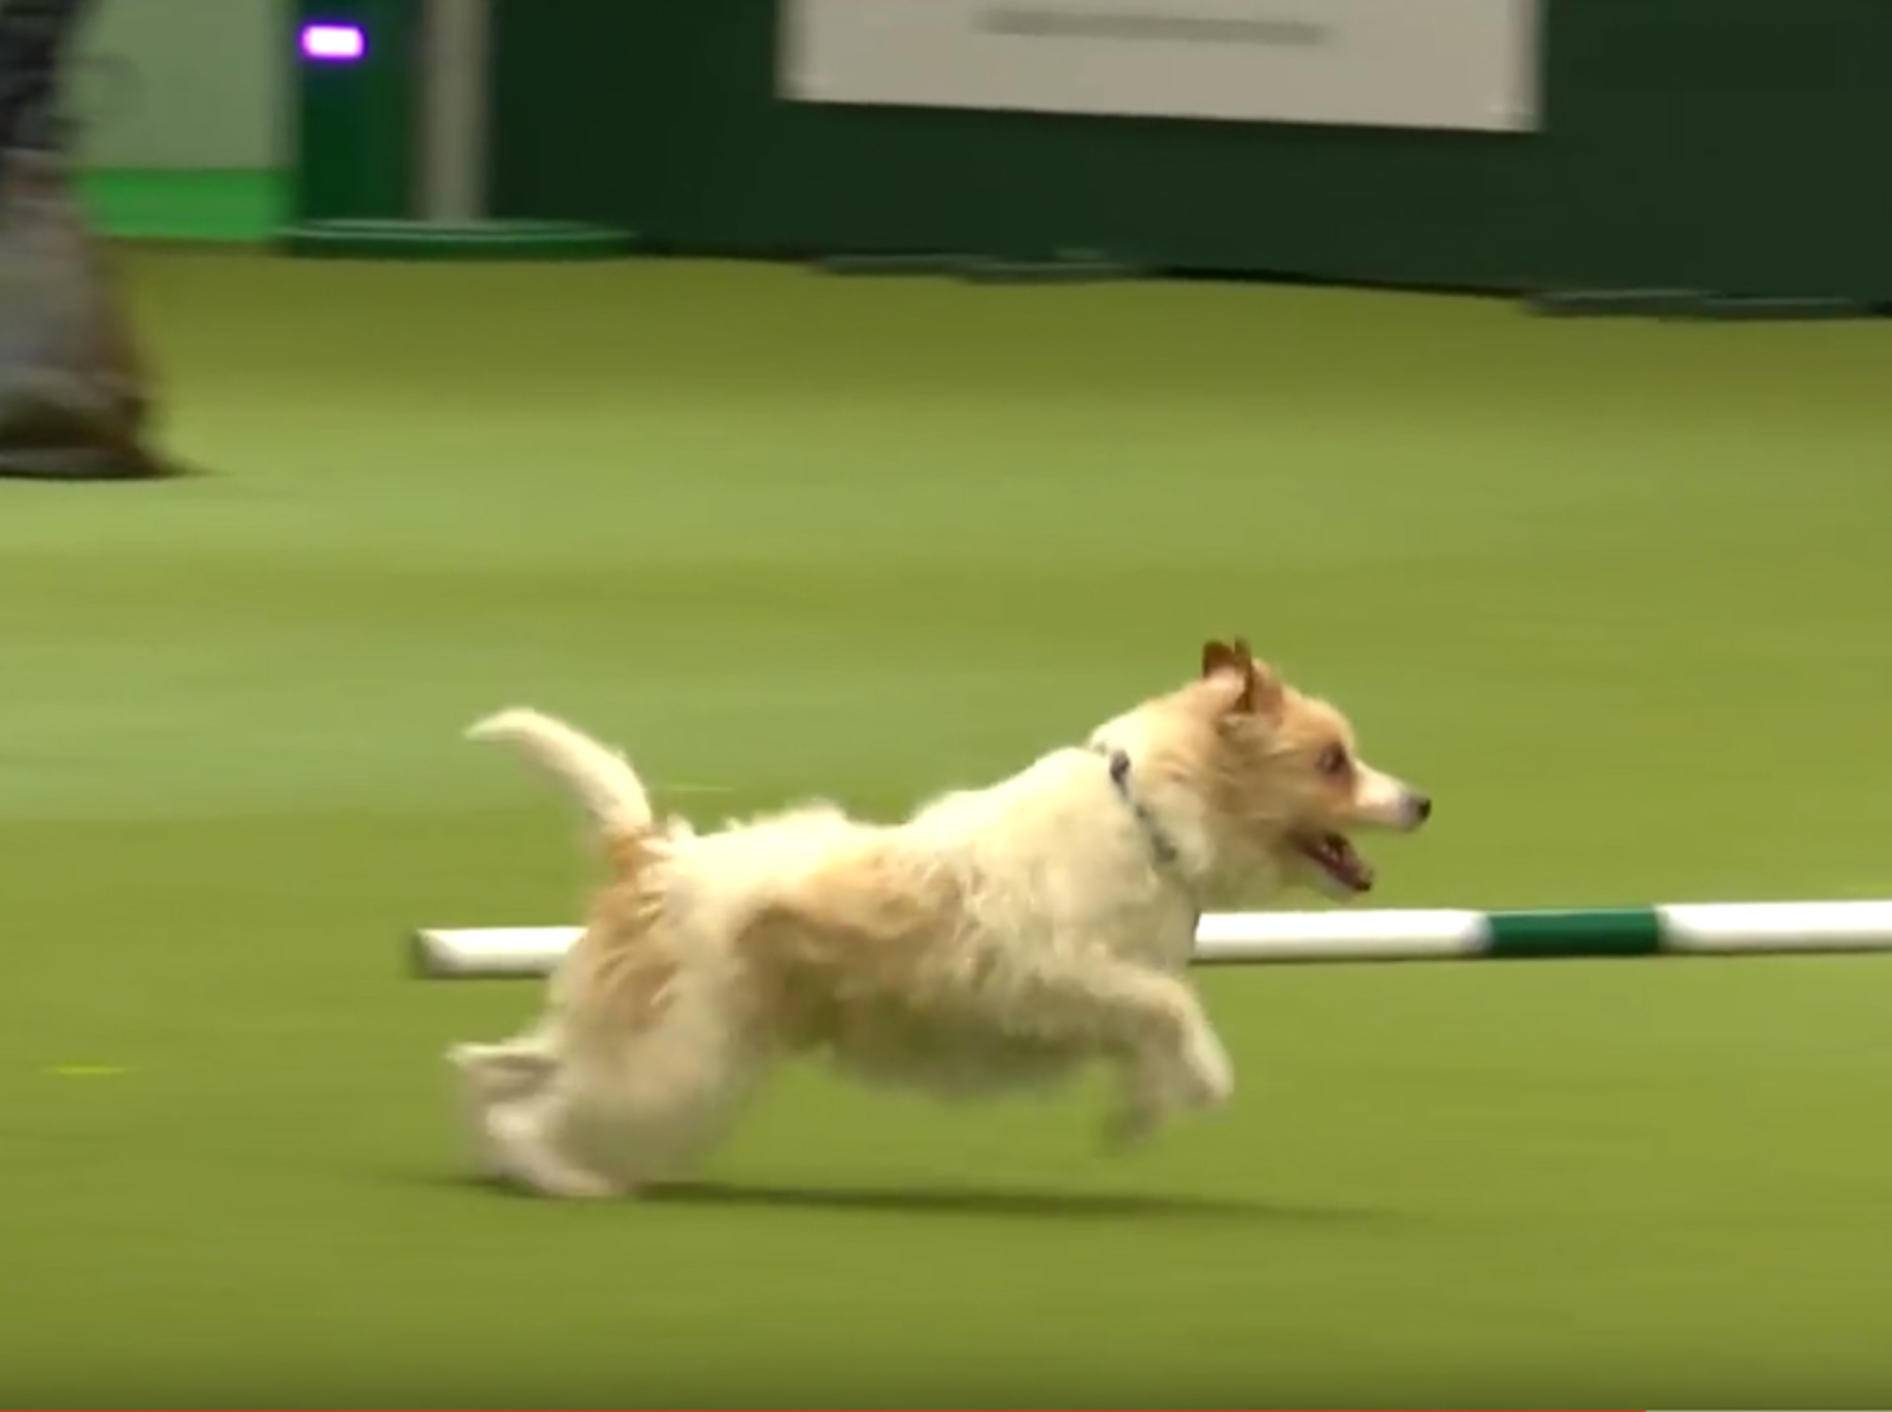 Jack-Russell-Terrier Olly pfeift auf Agility-Regeln – YouTube / Crufts